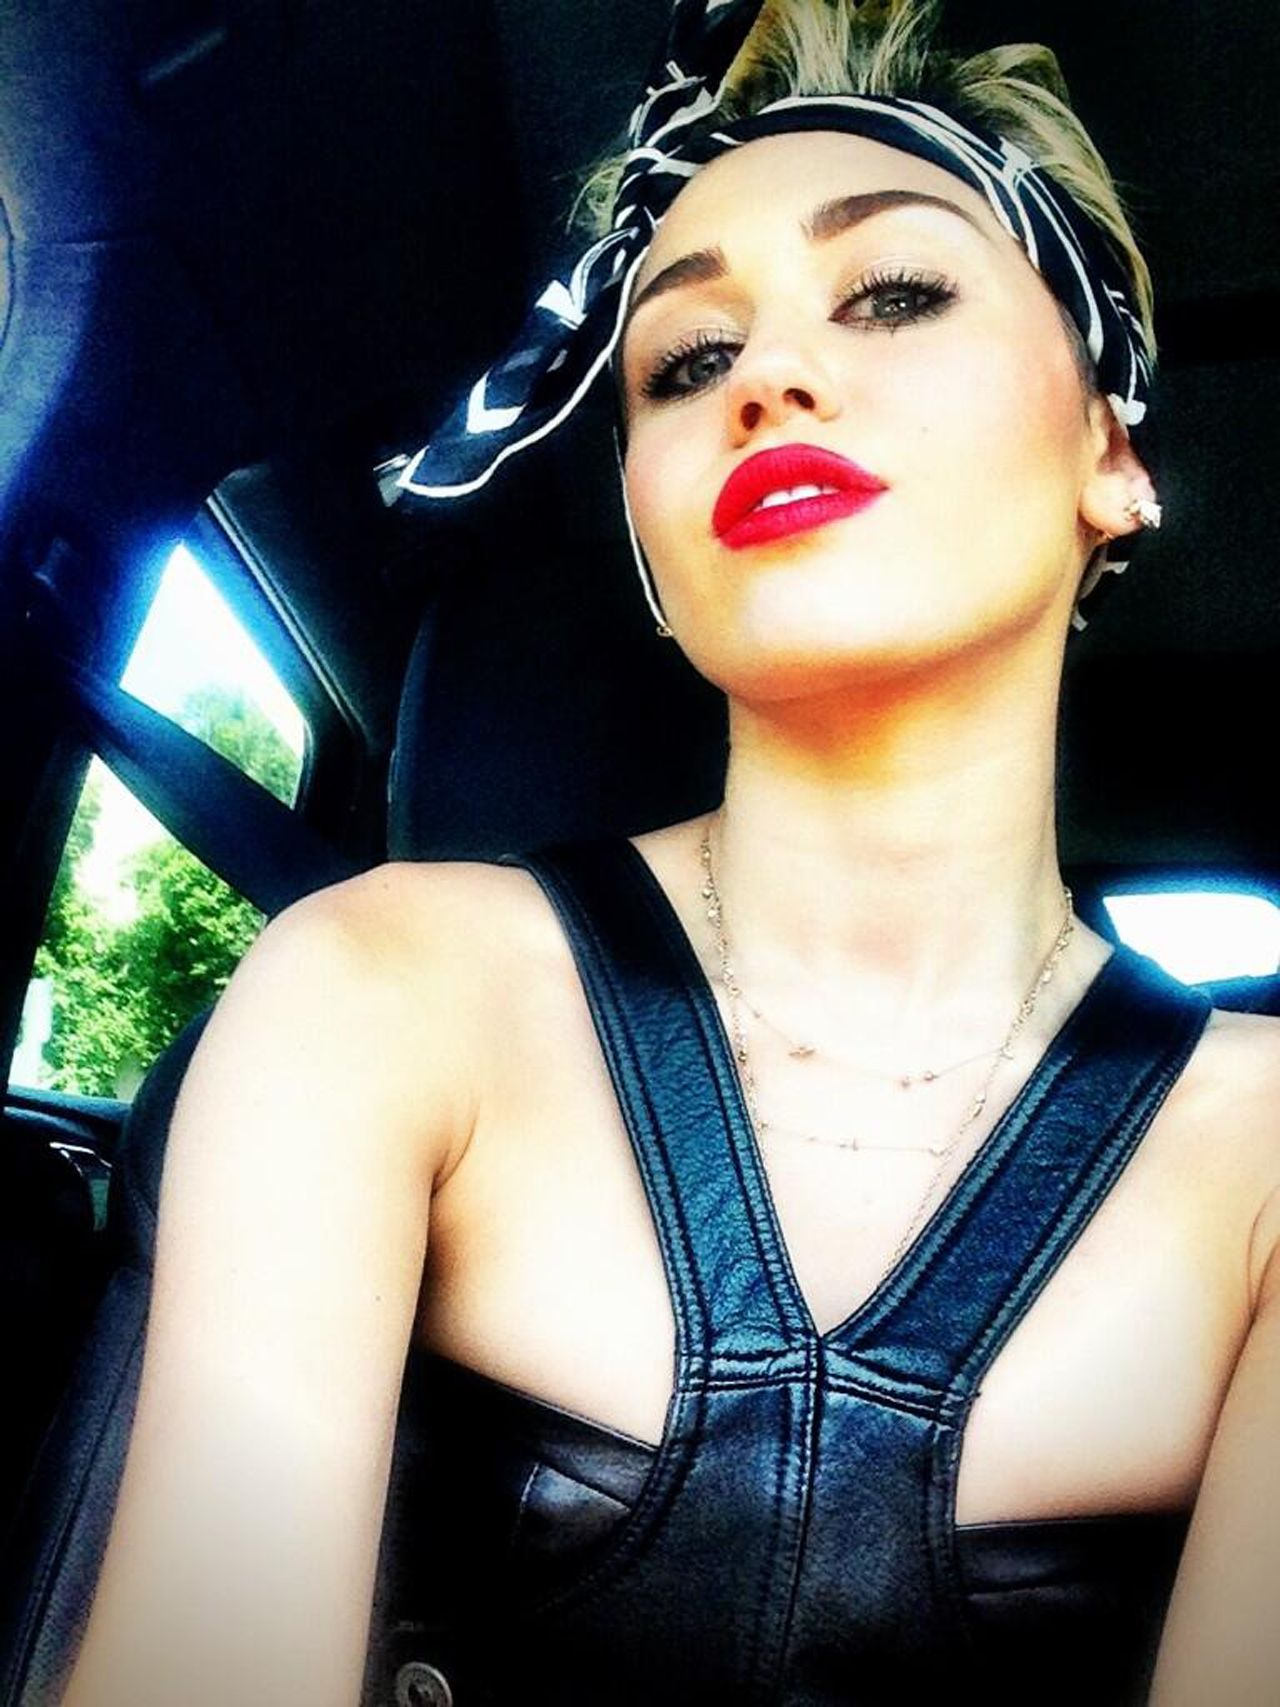 Miley in a bandana mileyus raunchiest photos ever celebs